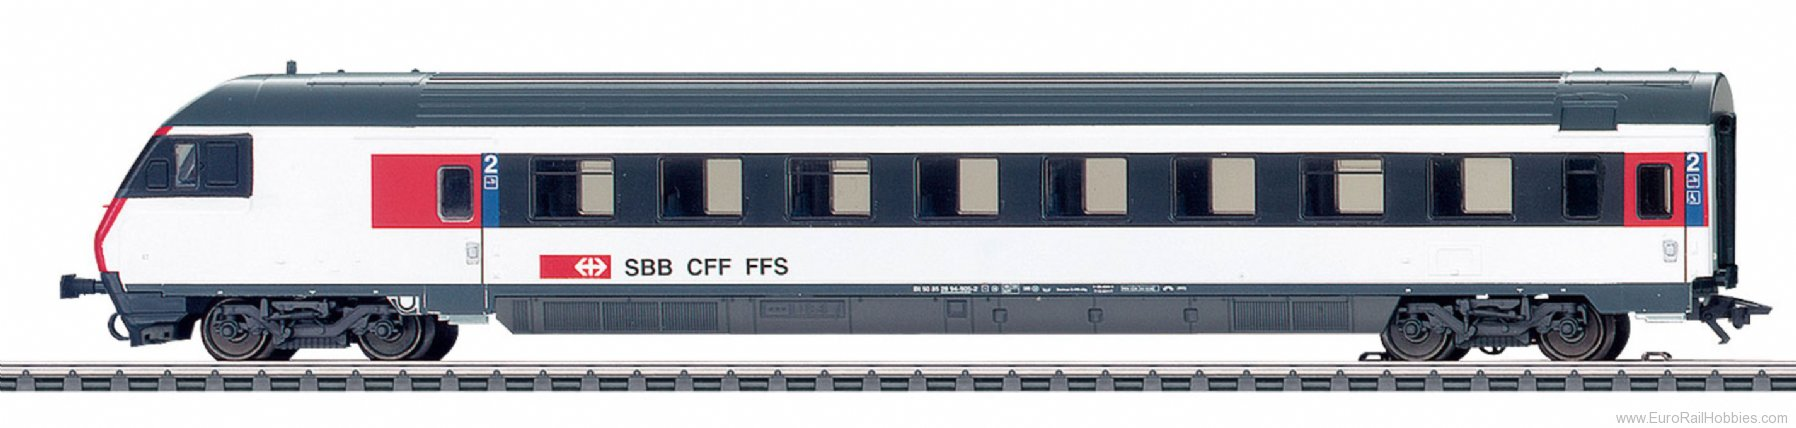 Marklin 42179  SBB Express Train Cab Control Car, IC-Design